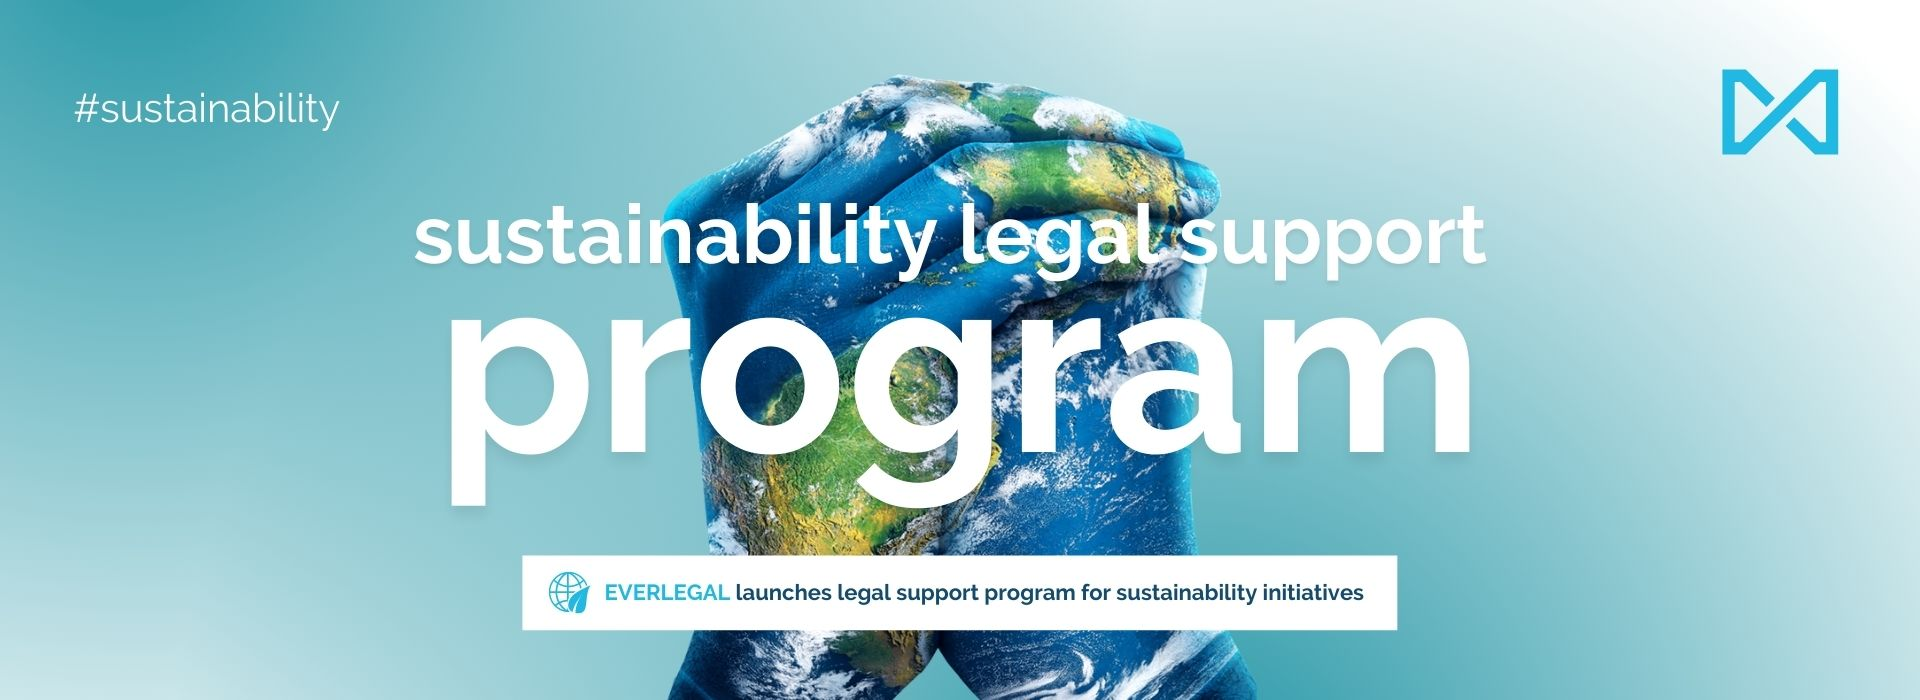 EVERLEGAL Launches Legal Support Program for Sustainability Initiatives